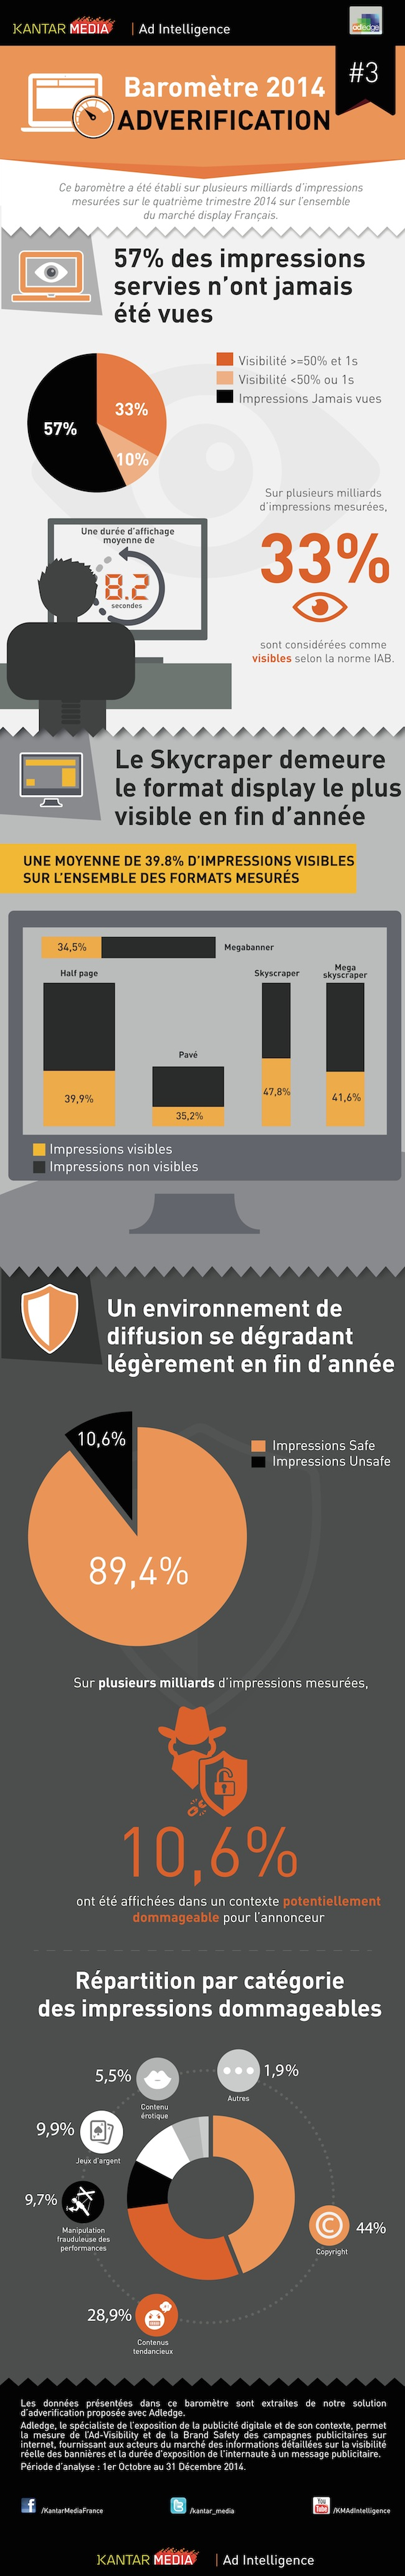 Infographie Kantar Impressions Publicitaires